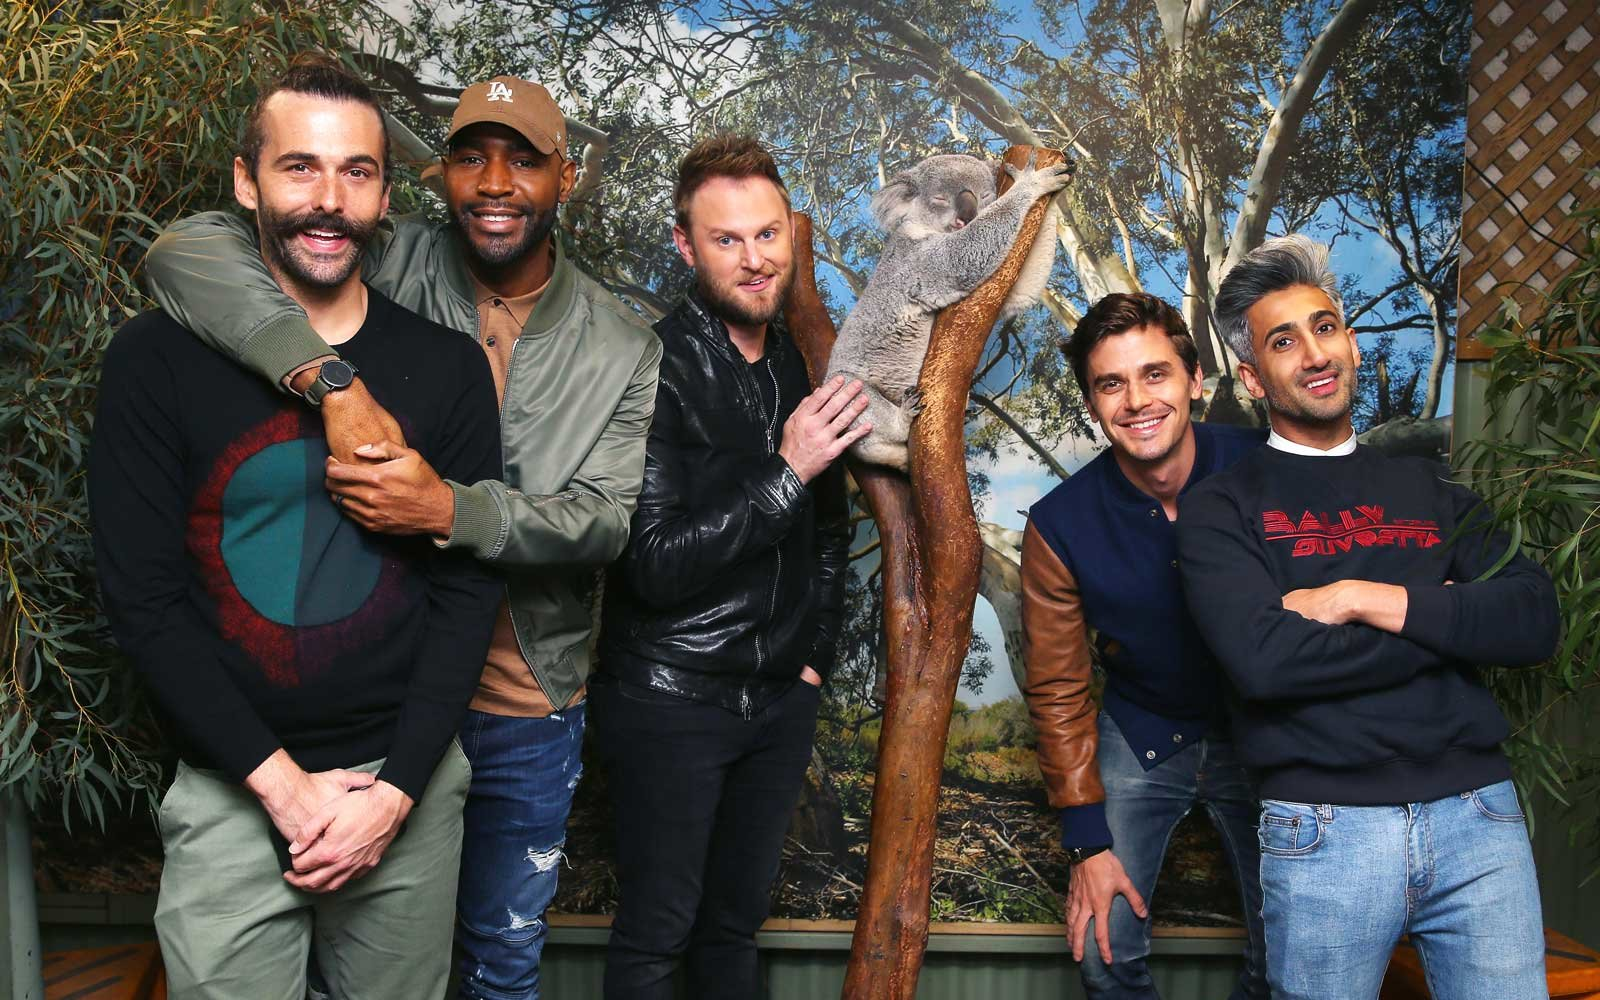 cast of Queer Eye visits the Featherdale Wildlife Park in Sydney, Australia